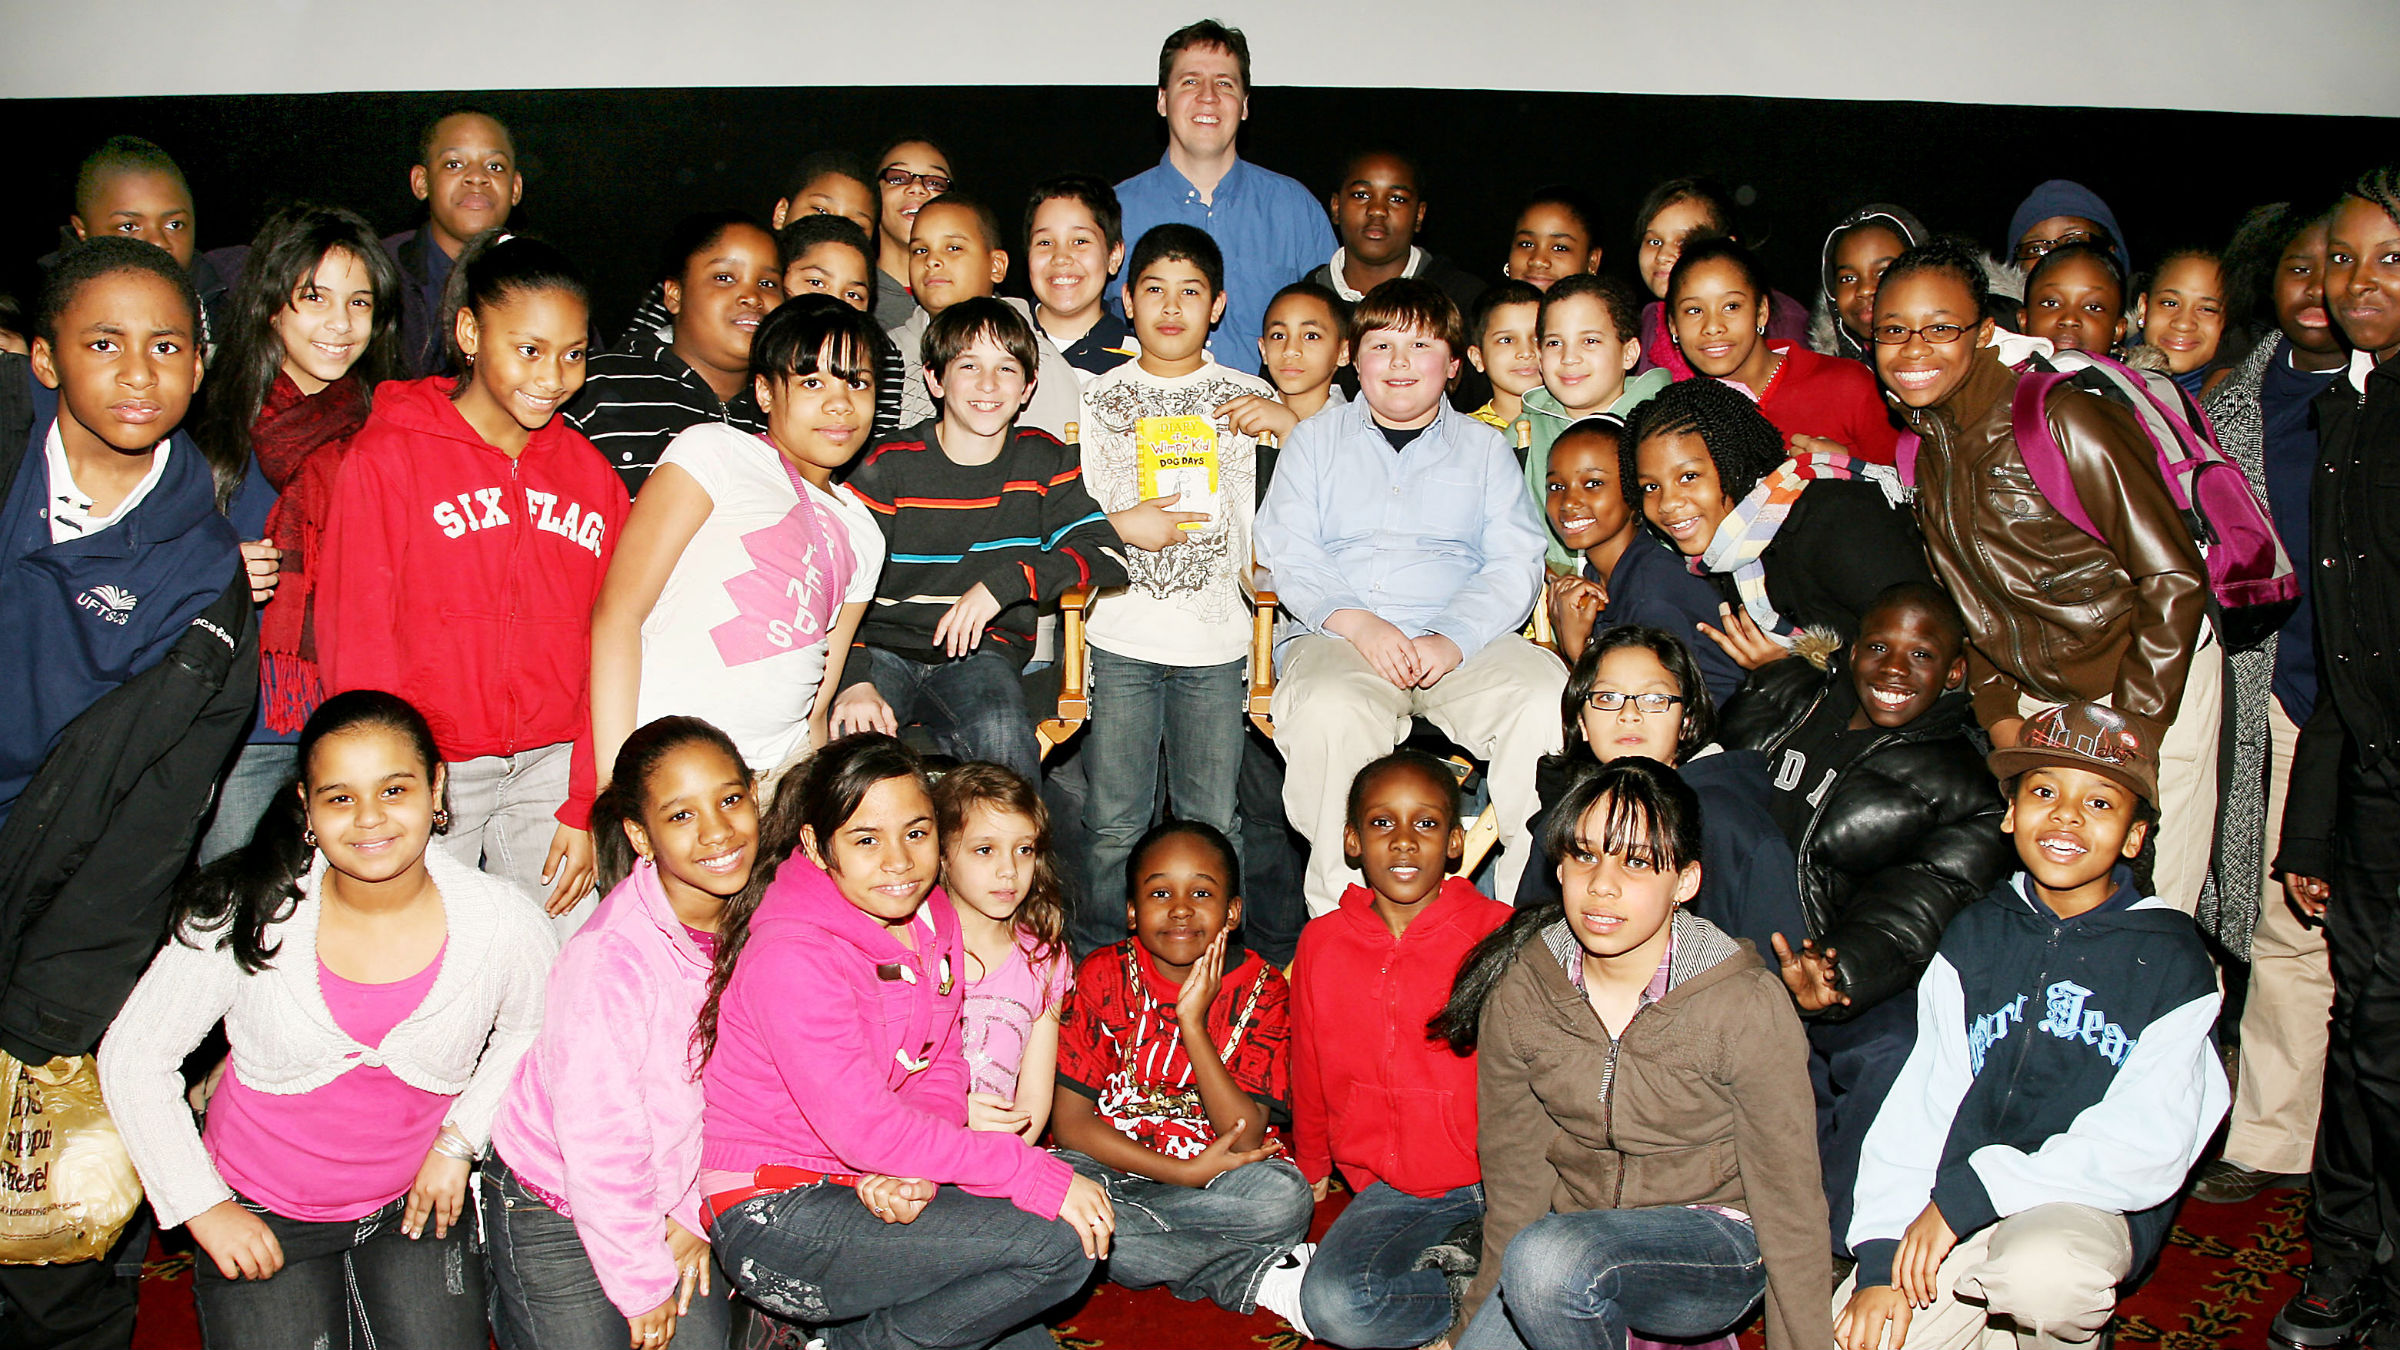 Group photo with Jeff Kinney and kids